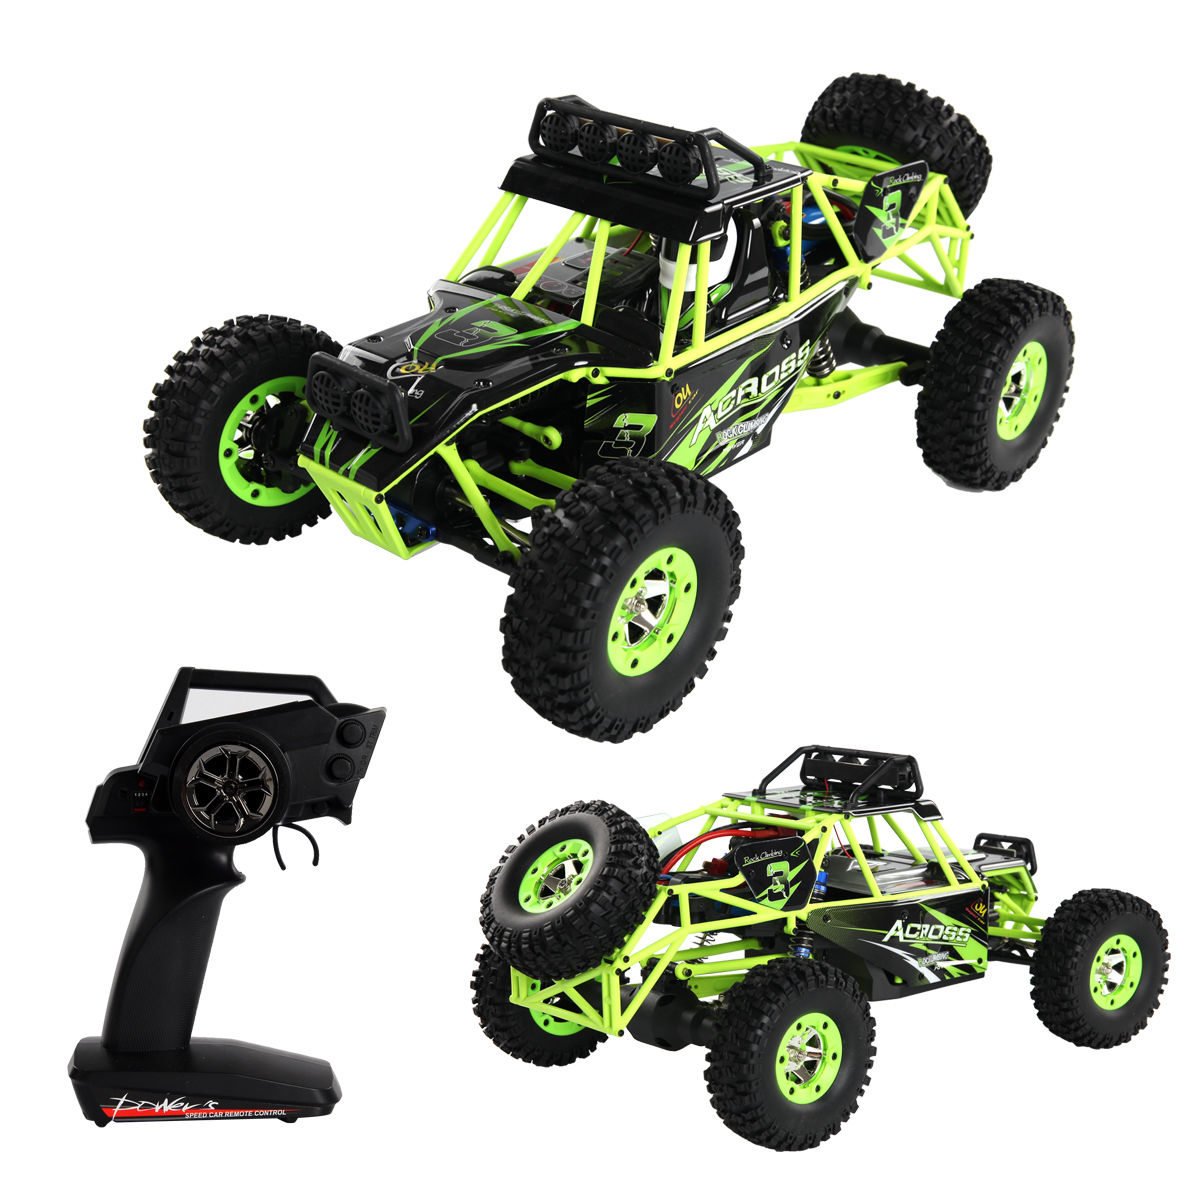 Costway 1:12 2.4G 2WD RC Off-Road Racing Car Radio Remote Control Rock Crawler Truck RTR